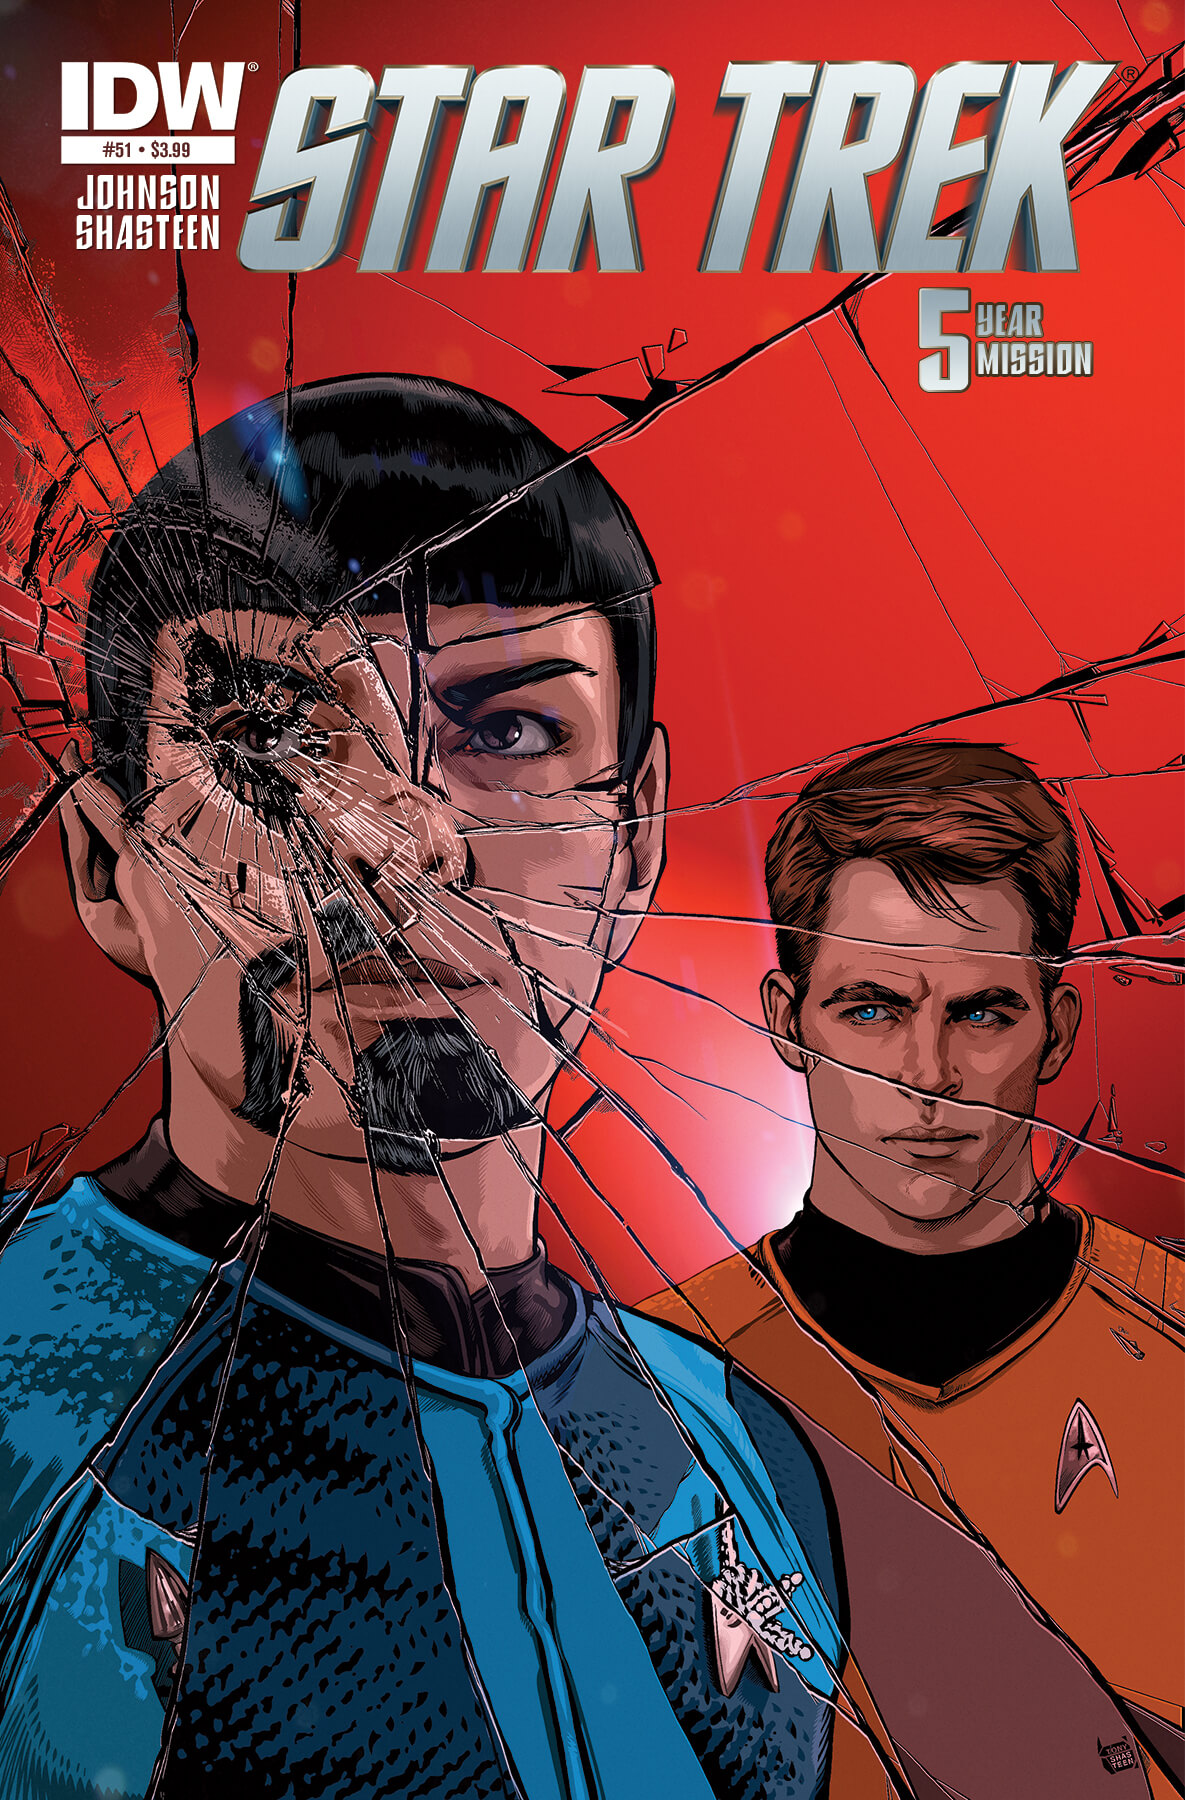 StarTrek51-cover